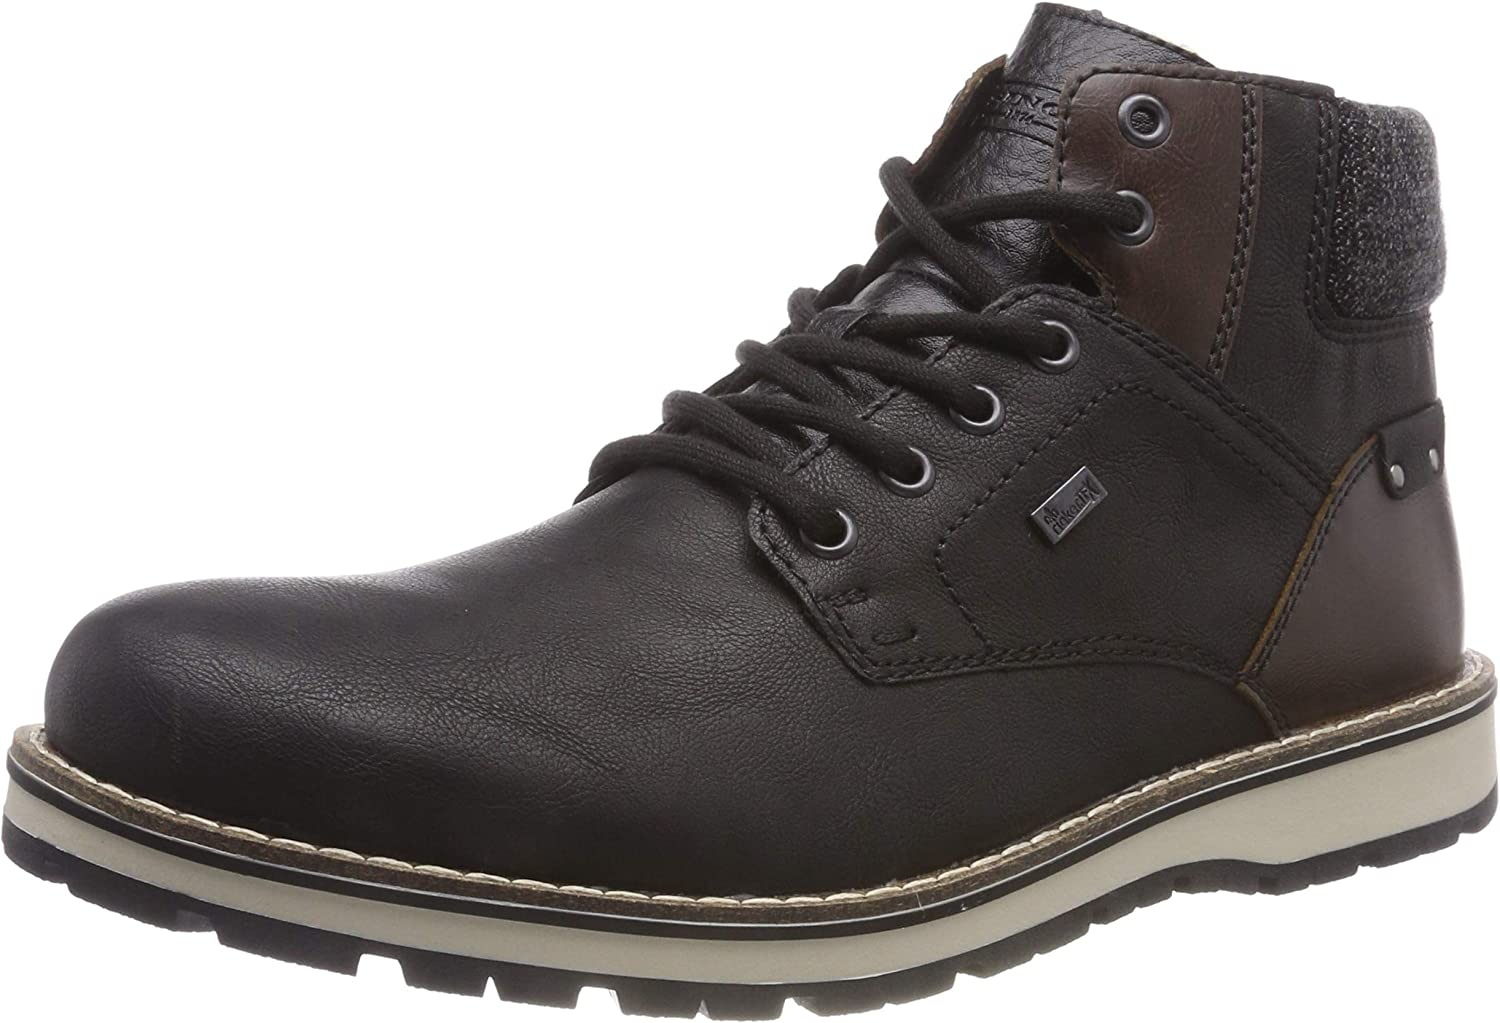 Rieker Men's Colorado Springs Mall Ankle Classic Trust Boots